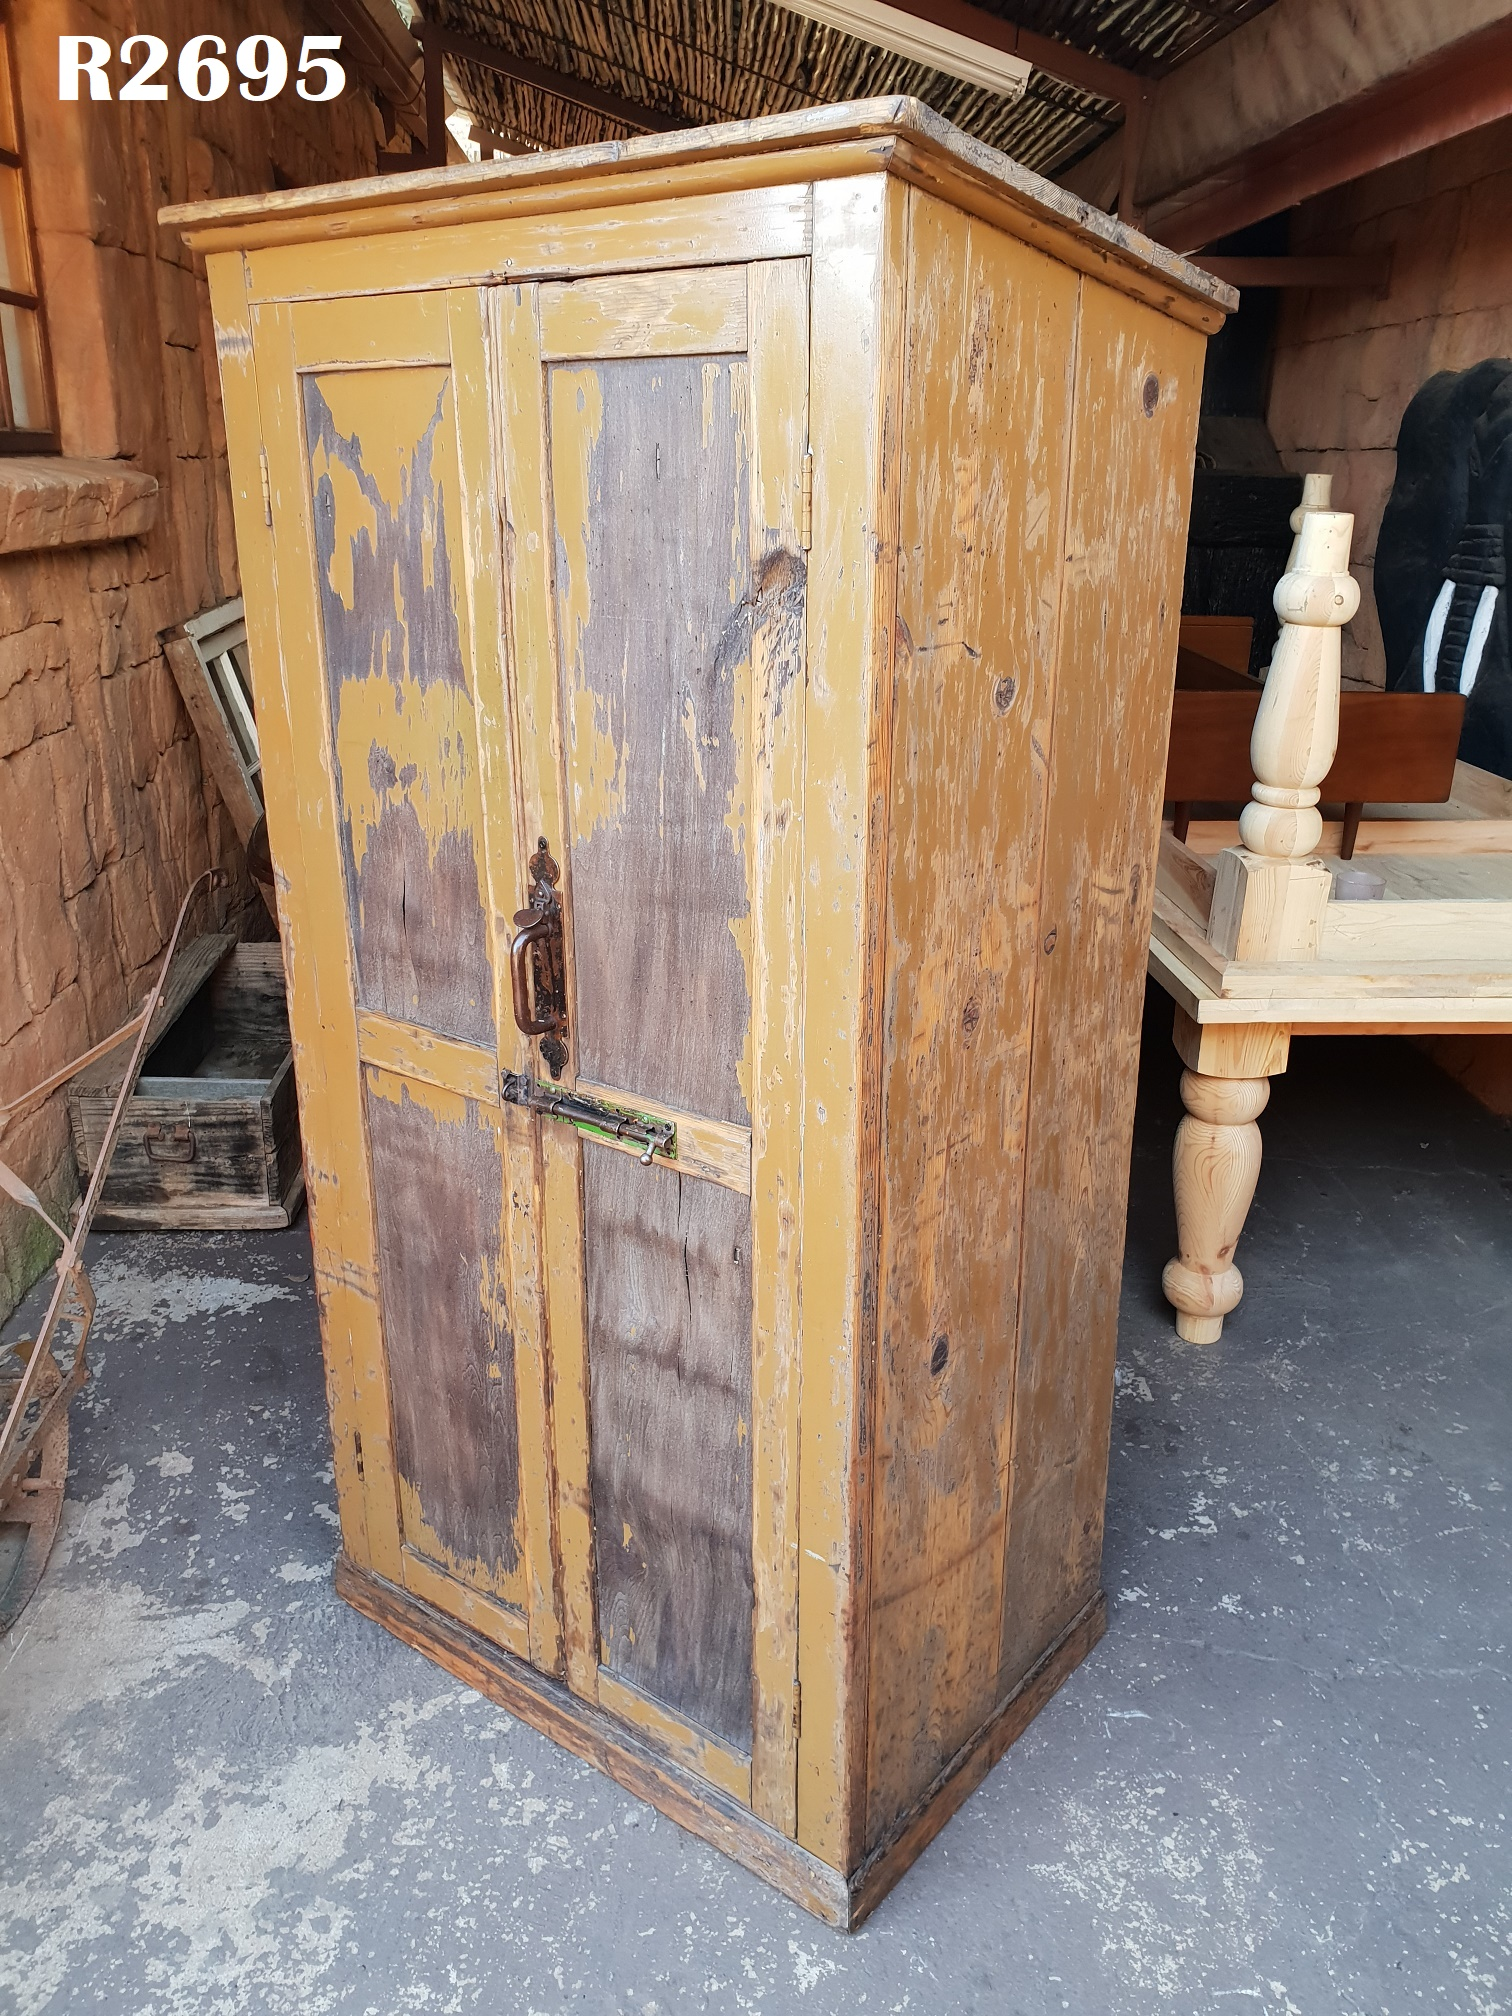 Antique Pantry Cupboard (980x660x1870) - Antique Pantry Cupboard (980x660x1870) Junk Mail